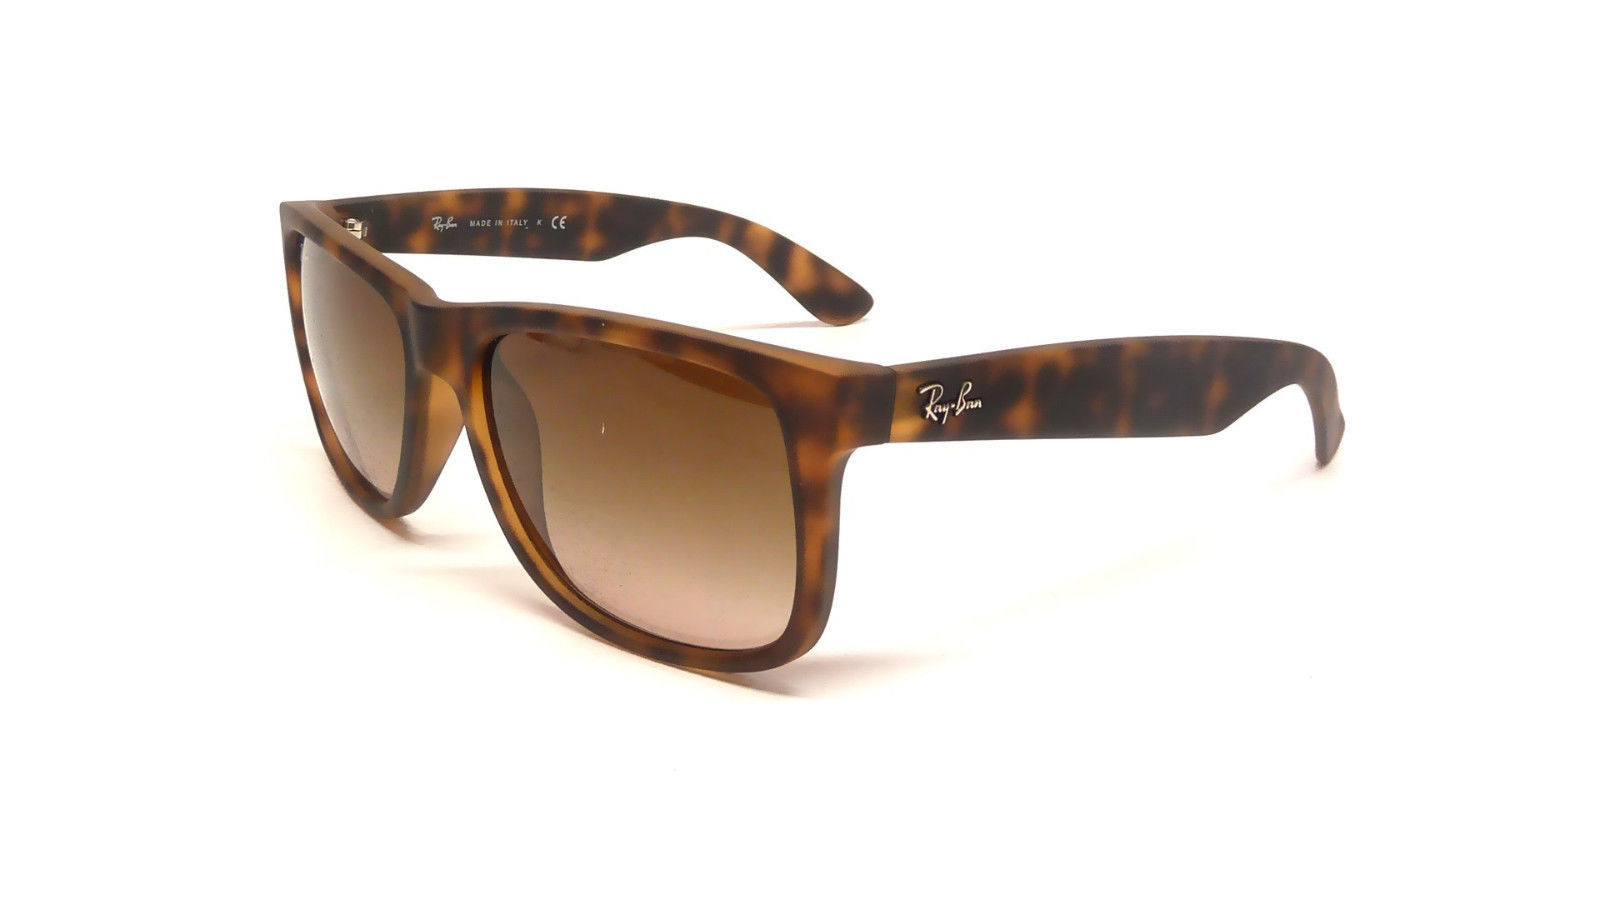 Primary image for Ray-Ban RB4165 Sunglasses Justin Havan Gradient Lenses Brown 53mm-18mm-148mm